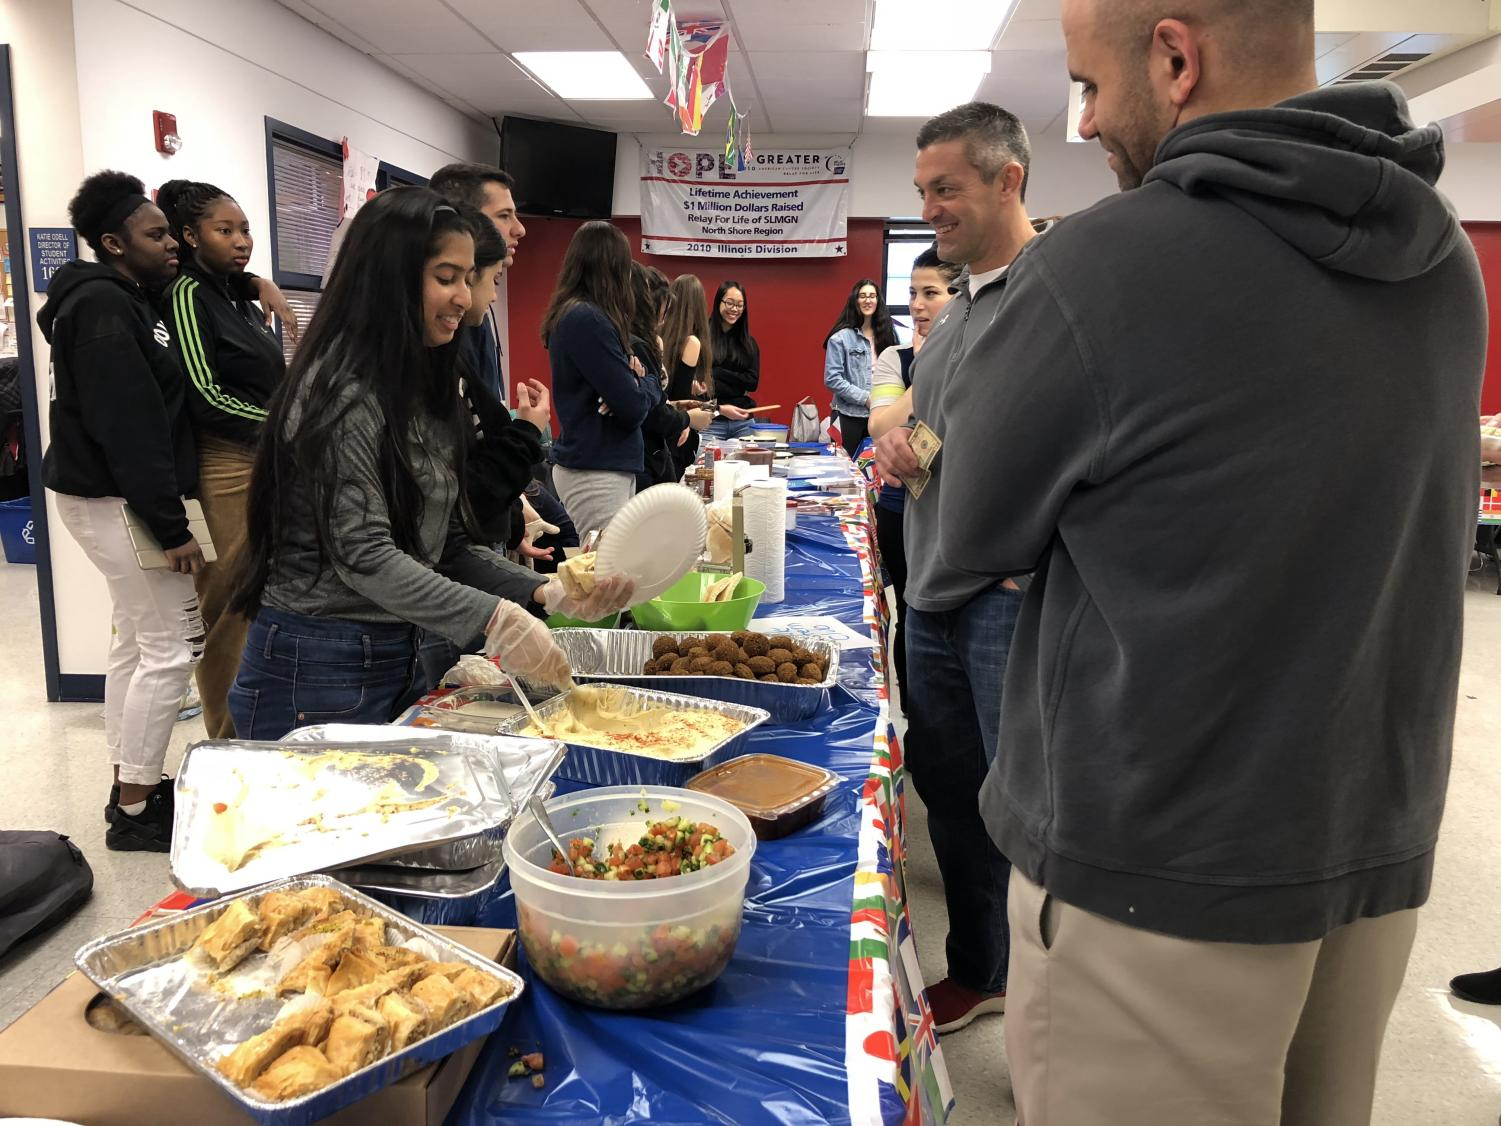 Student from Middle Eastern club serves food to Principal Jason Ness.